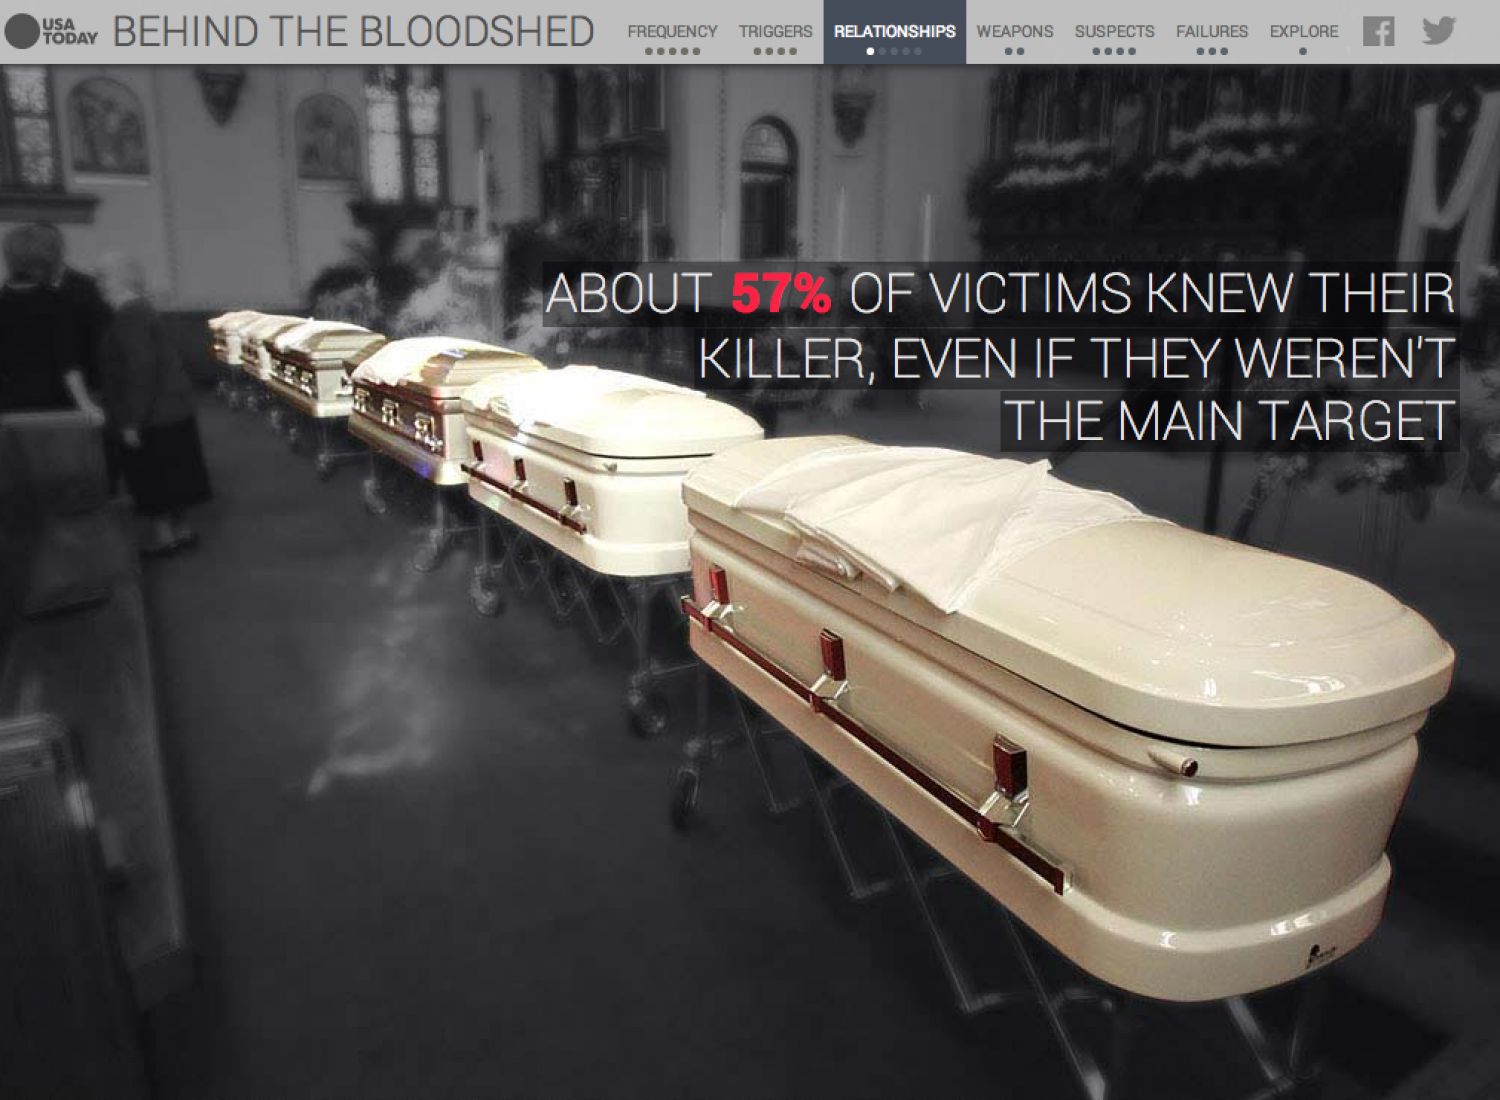 Behind the Bloodshed Infographic